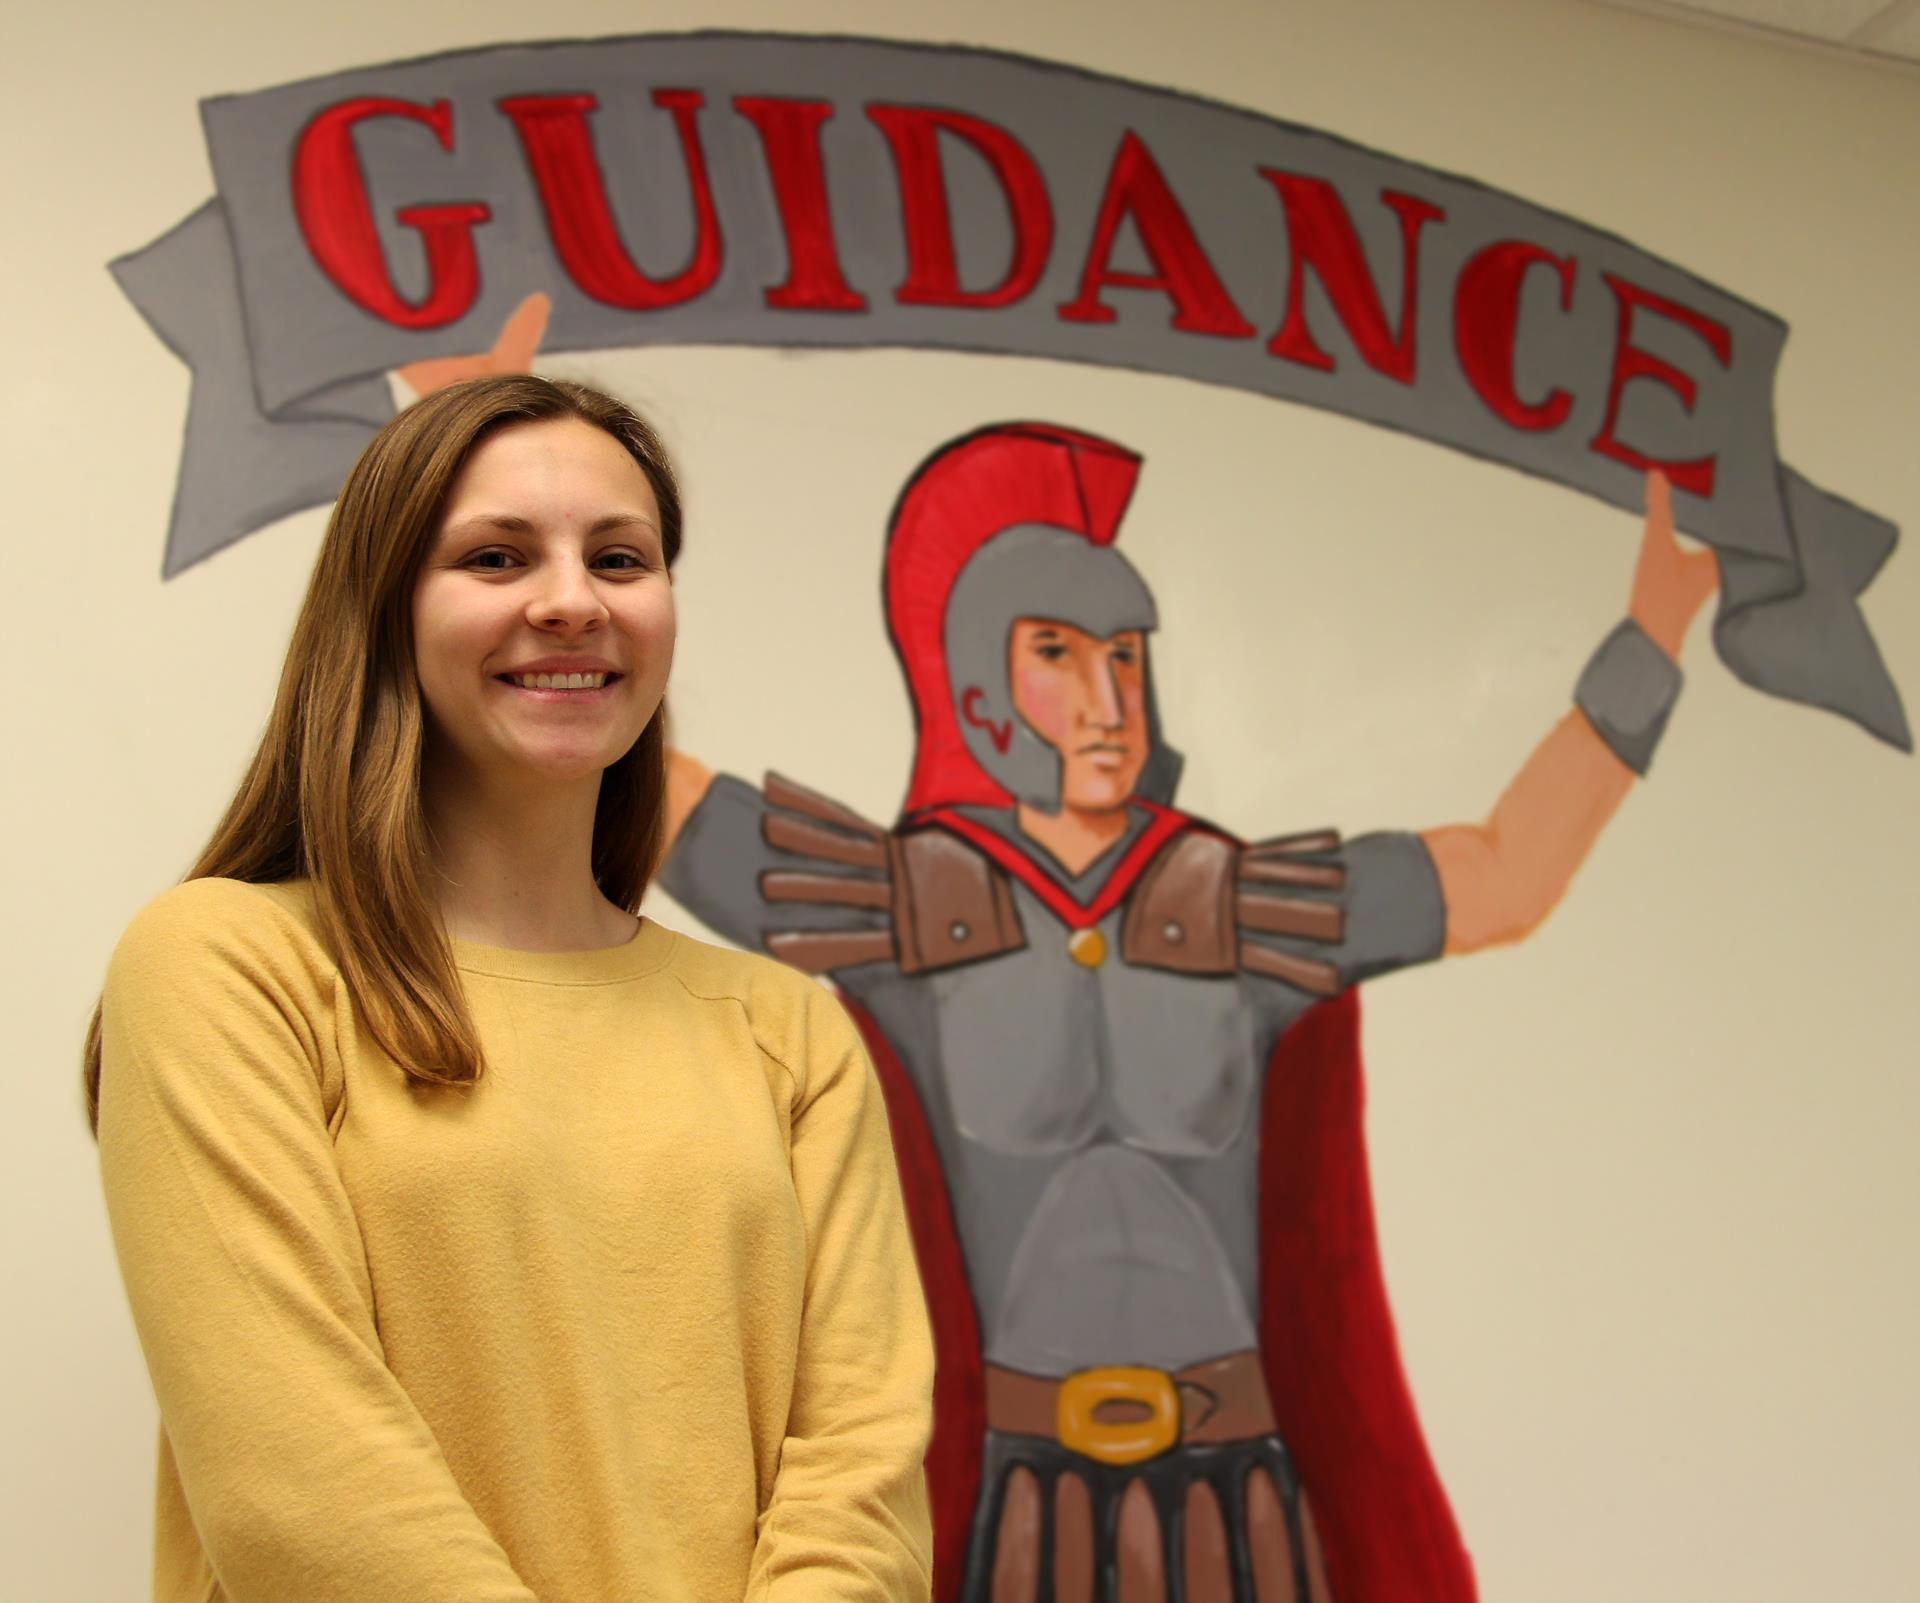 Katerina Retzlaff next to guidance sign